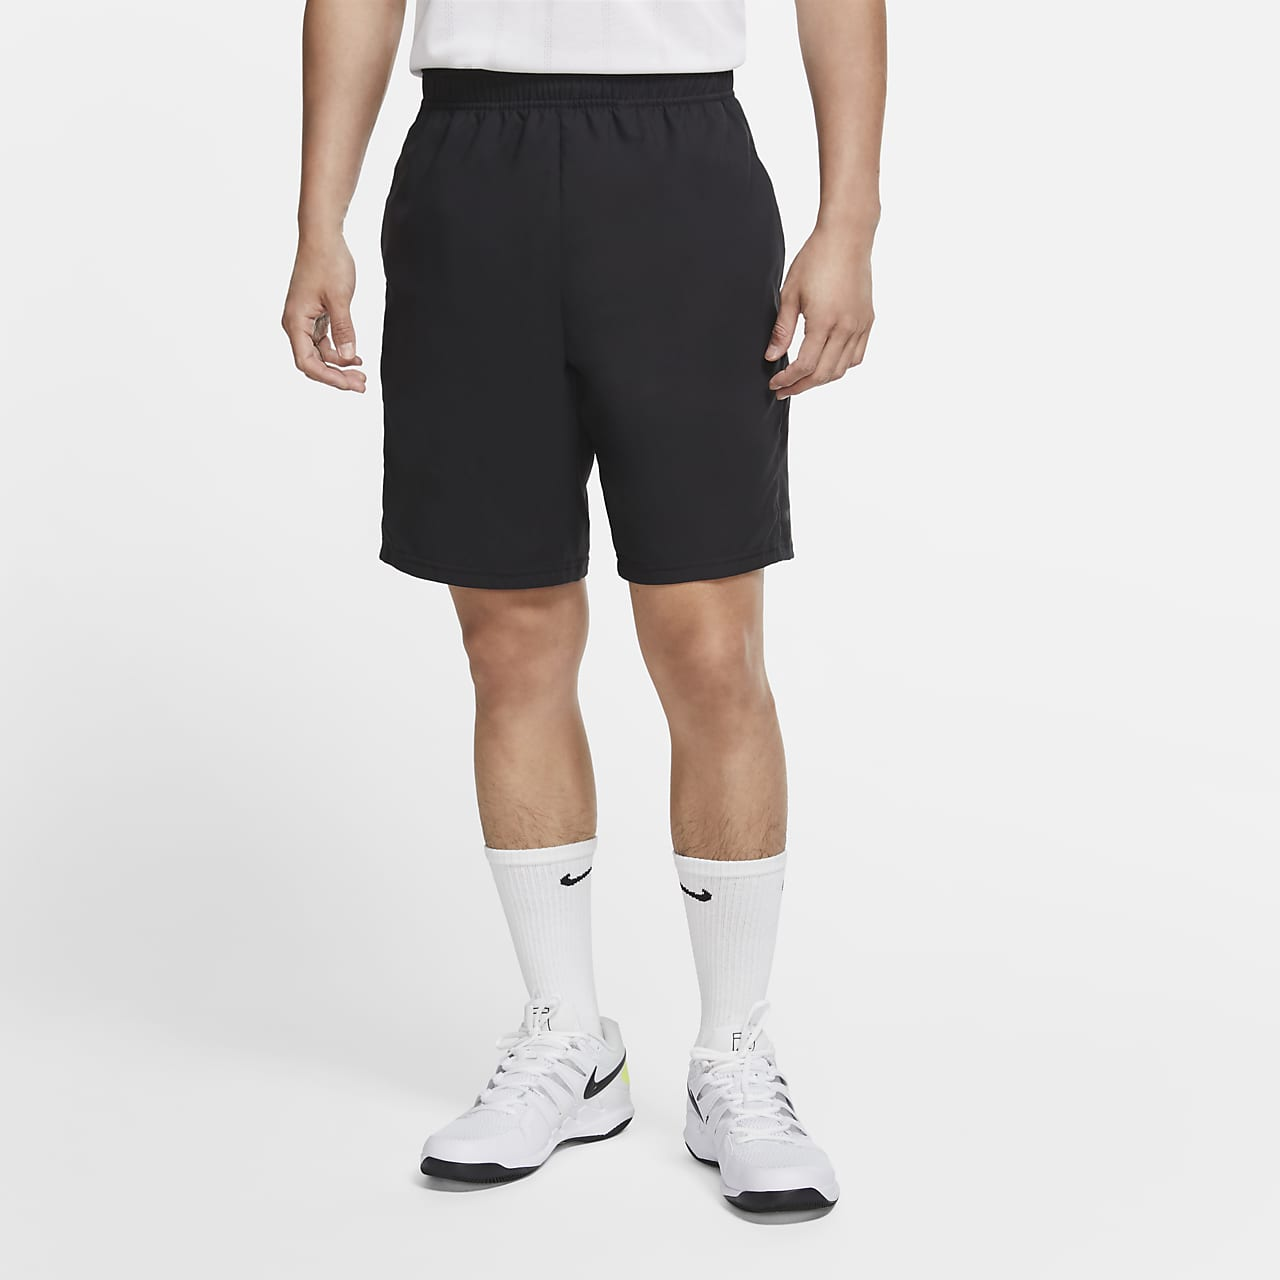 "NikeCourt Dri-FIT Men's 9"" (23cm approx.) Tennis Shorts"